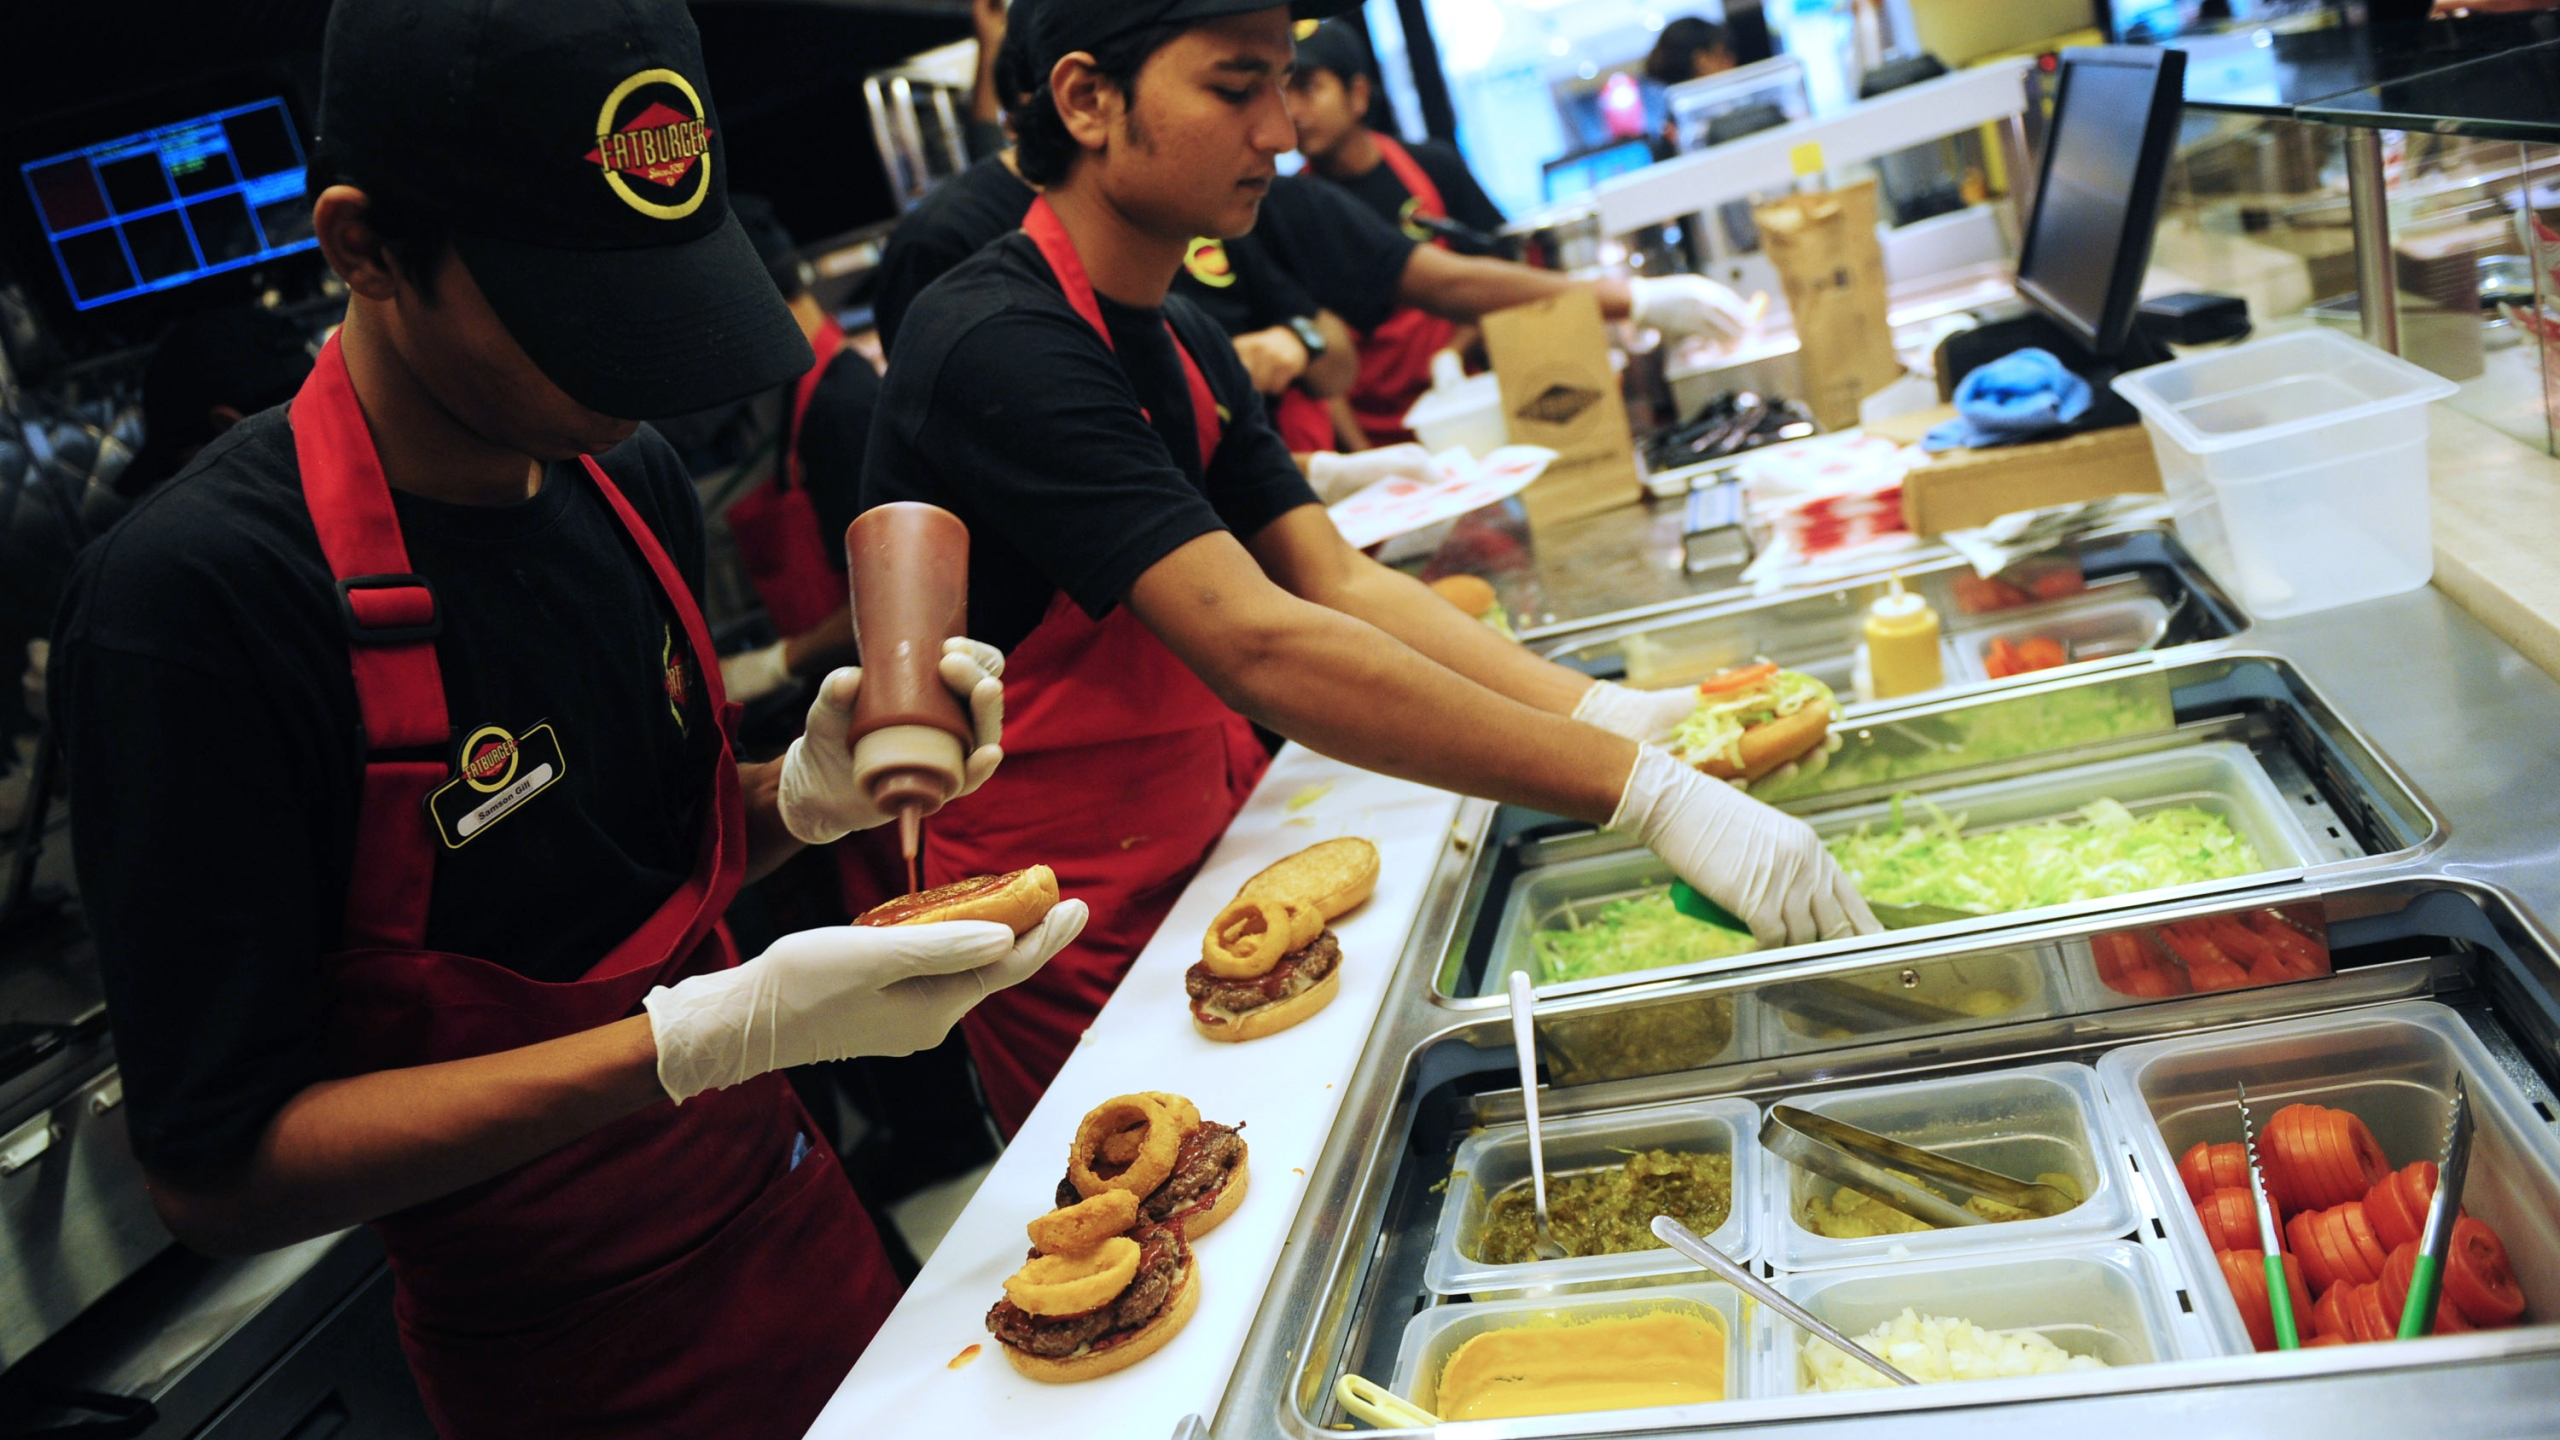 In this picture taken Jan. 10, 2013, Pakistani employees prepare food at a Fatburger location in Karachi. (Credit: Rizwan Tabassum / AFP / Getty Images)